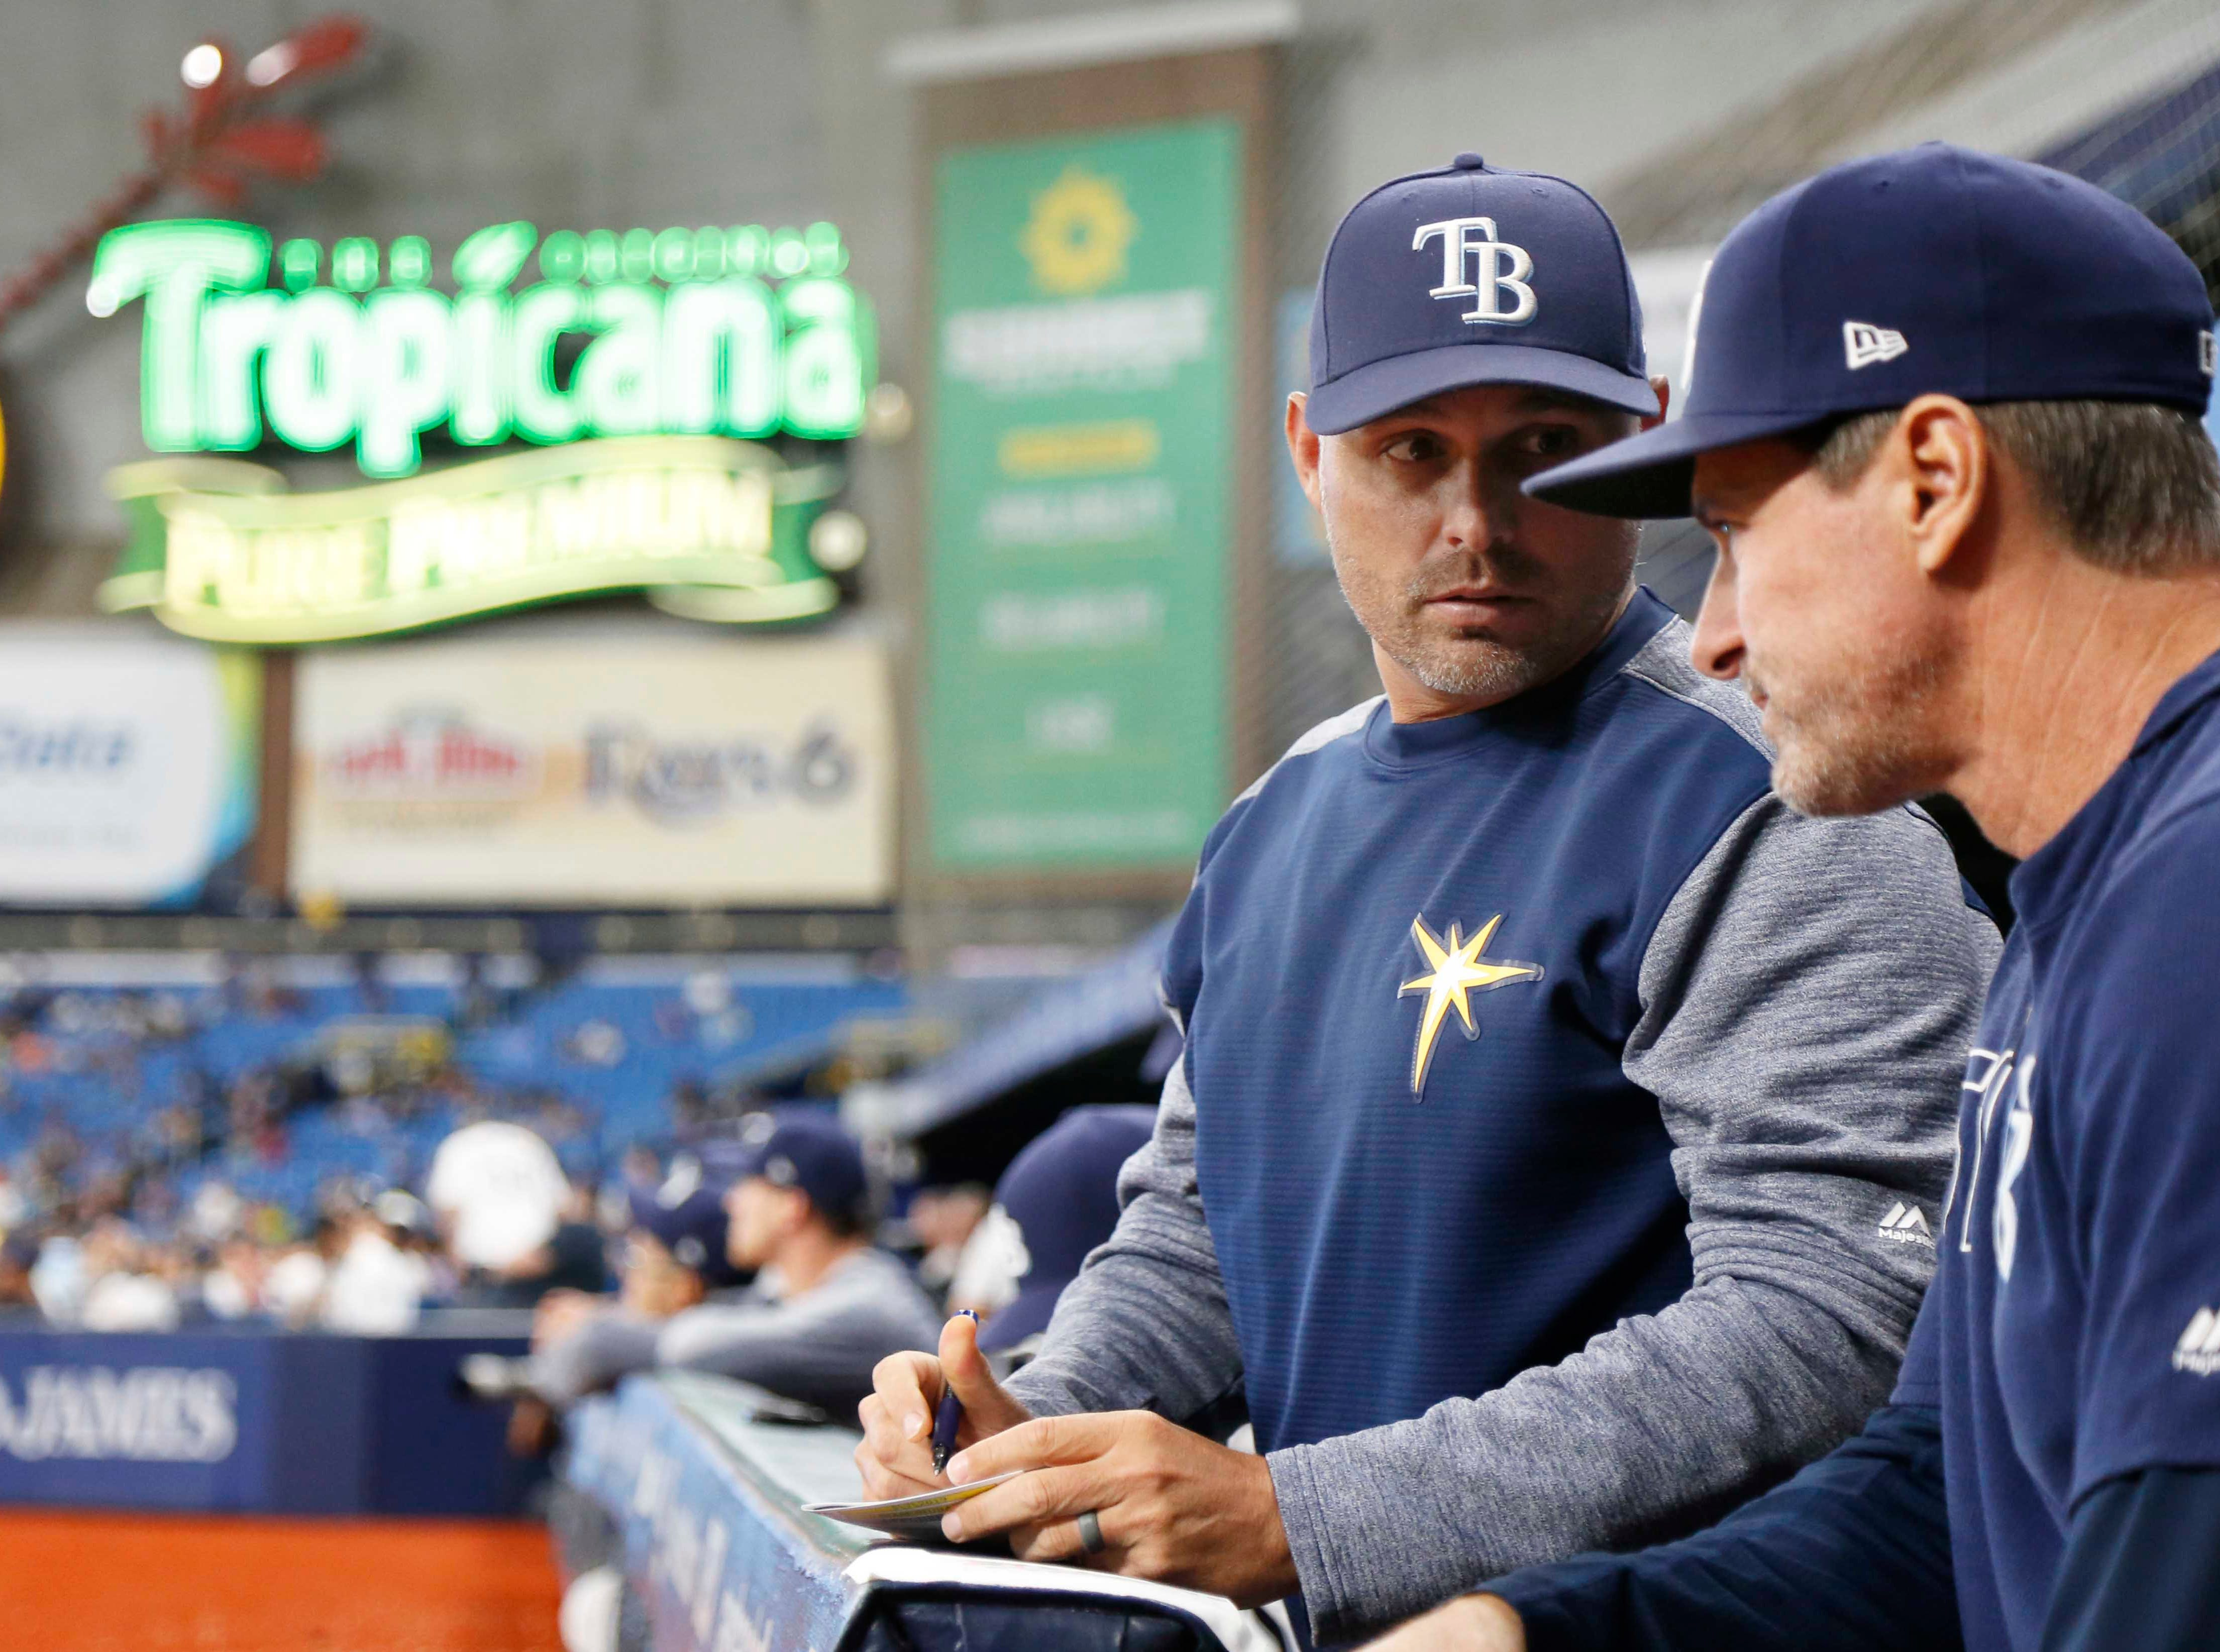 May 7, 2019; St. Petersburg, FL, USA; Tampa Bay Rays manager Kevin Cash (16) talks with hitting coach Chad Mottola (51) during the fourth inning against the Arizona Diamondbacks at Tropicana Field. Mandatory Credit: Kim Klement-USA TODAY Sports